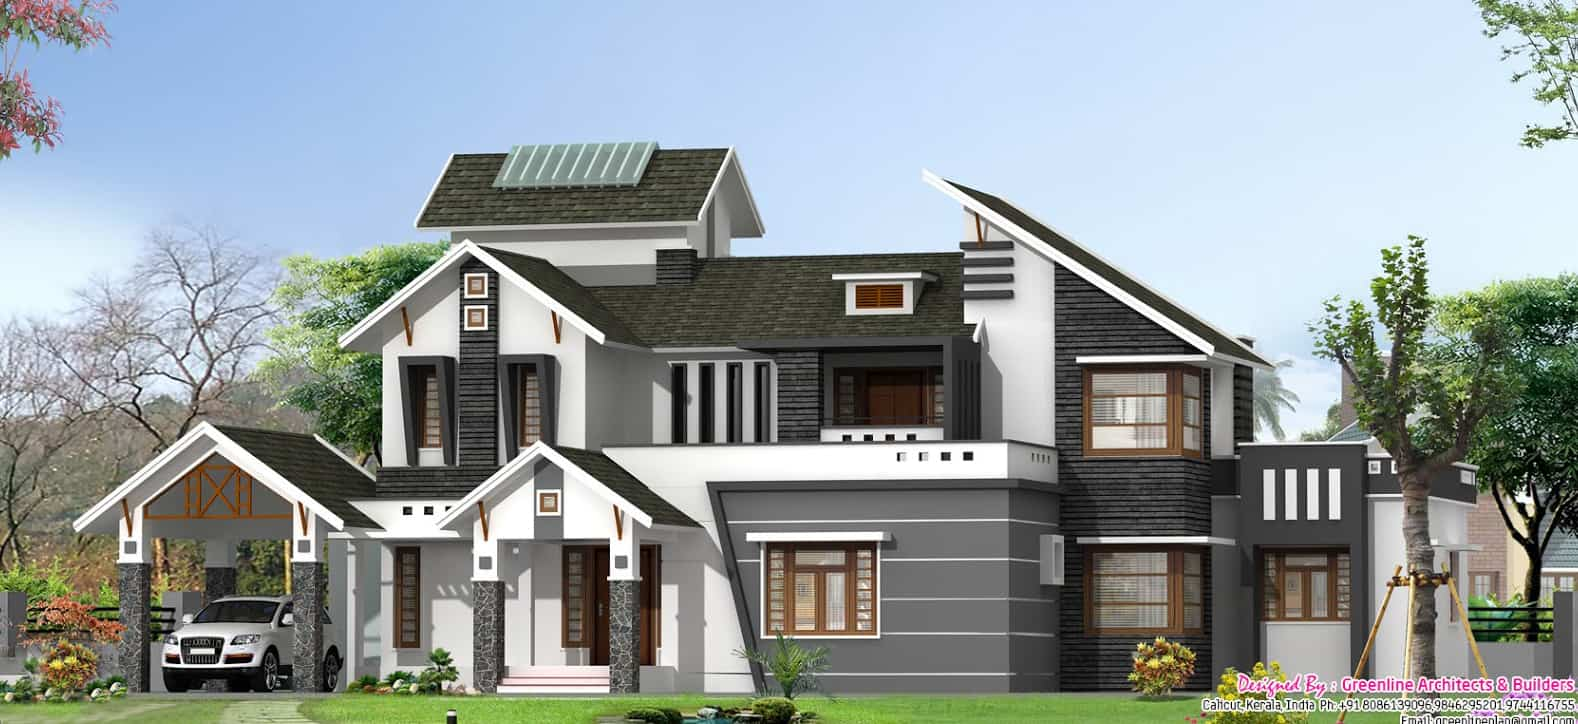 Unique house designs keralahouseplanner for Awesome home plans